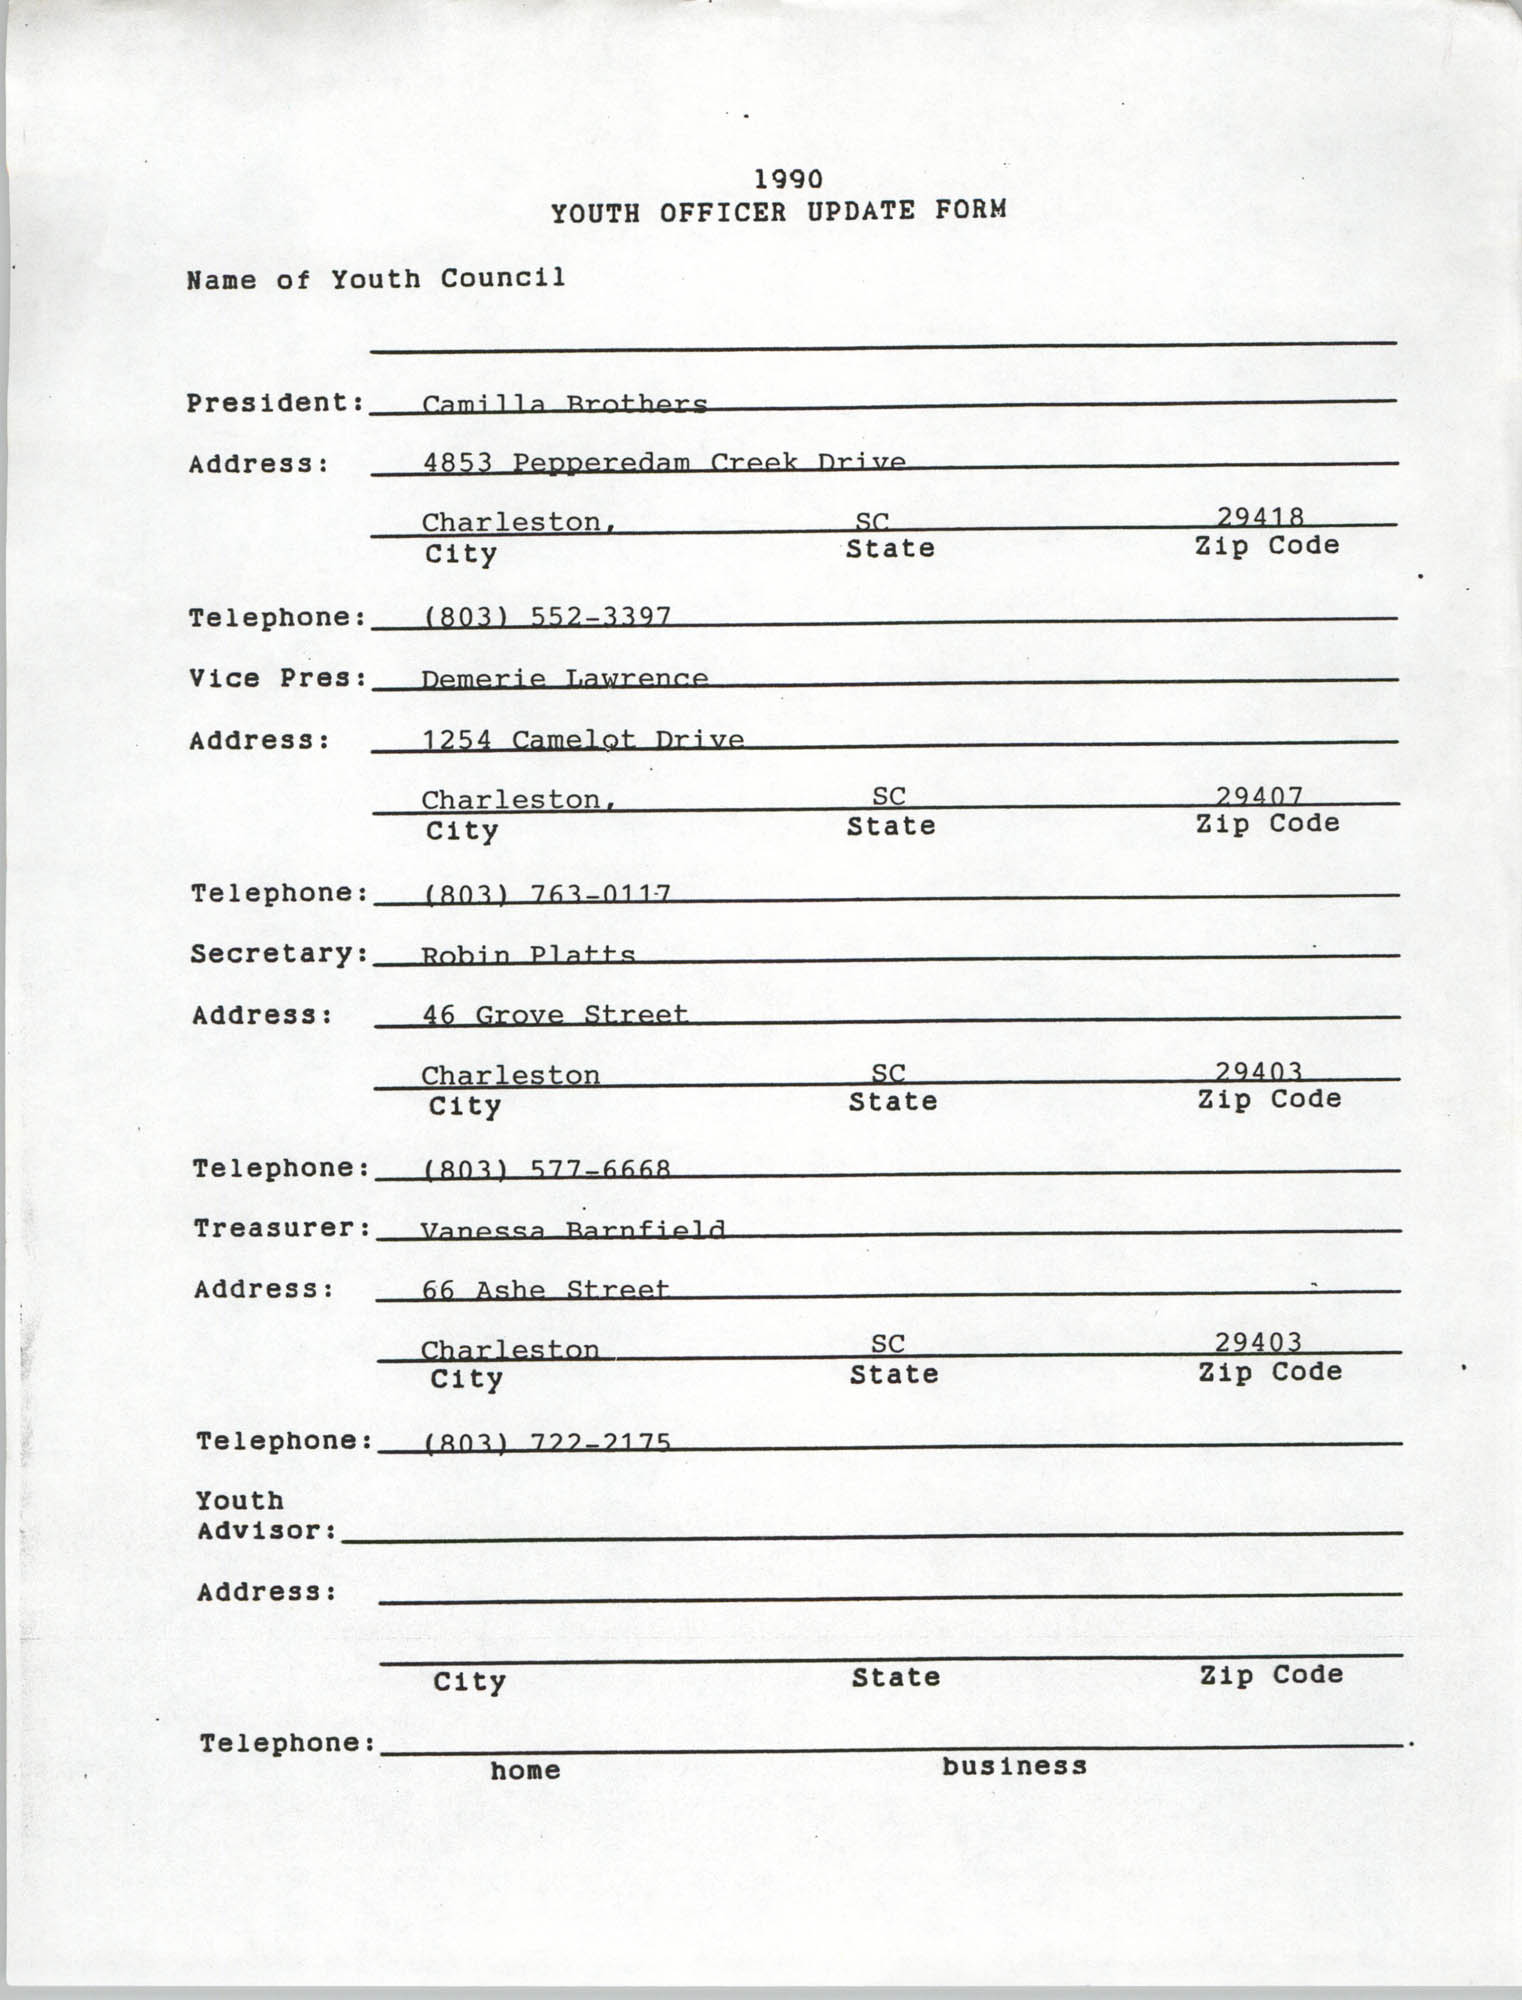 Youth Officer Update Form, 1990